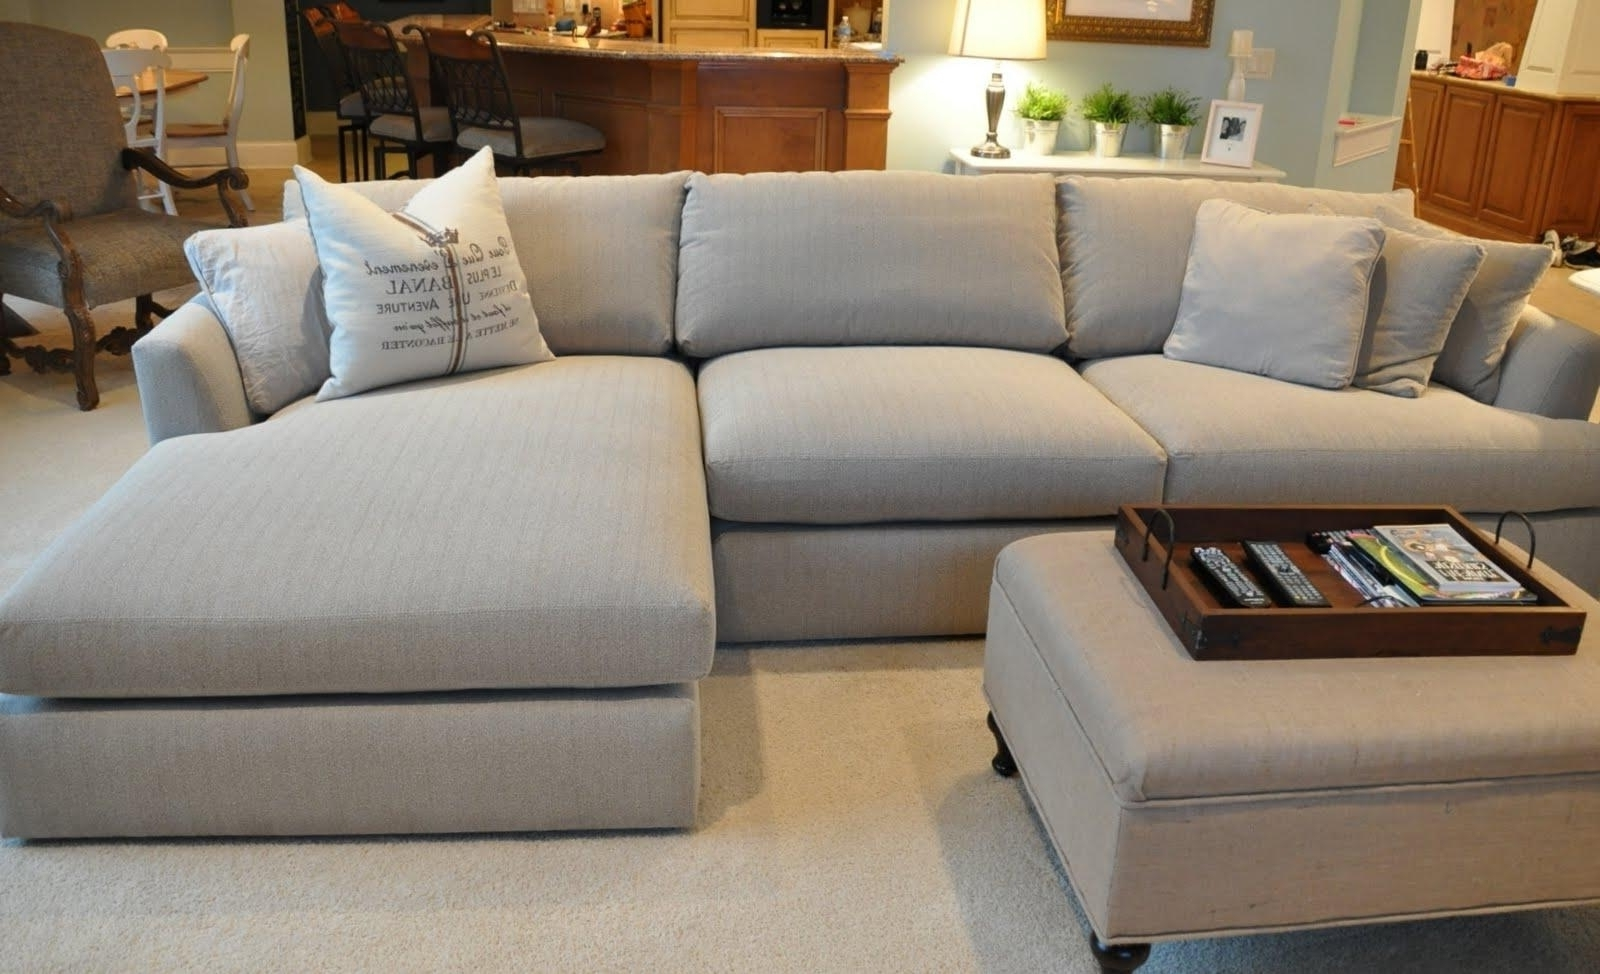 Current Wide Seat Sectional Sofas For Sectional Sets Pull Out Sectional Sofa Corner Sectional Couch (View 6 of 20)